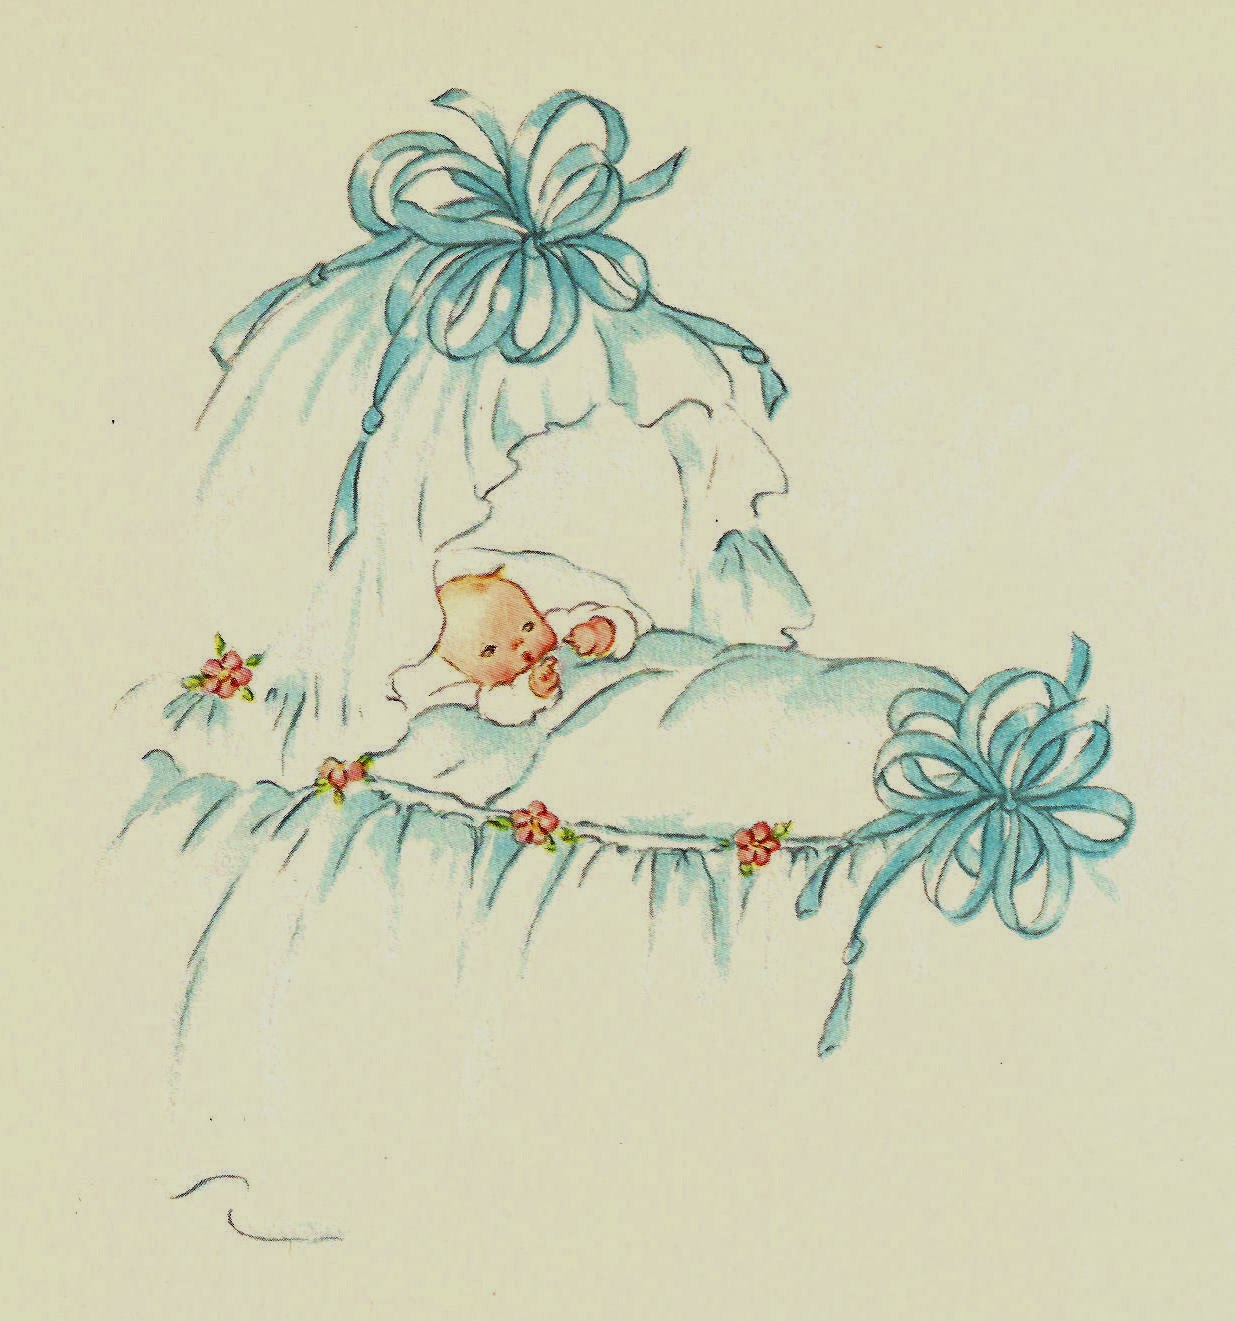 Baby funeral cliparts download Free Baby Death Cliparts, Download Free Clip Art, Free Clip Art on ... download